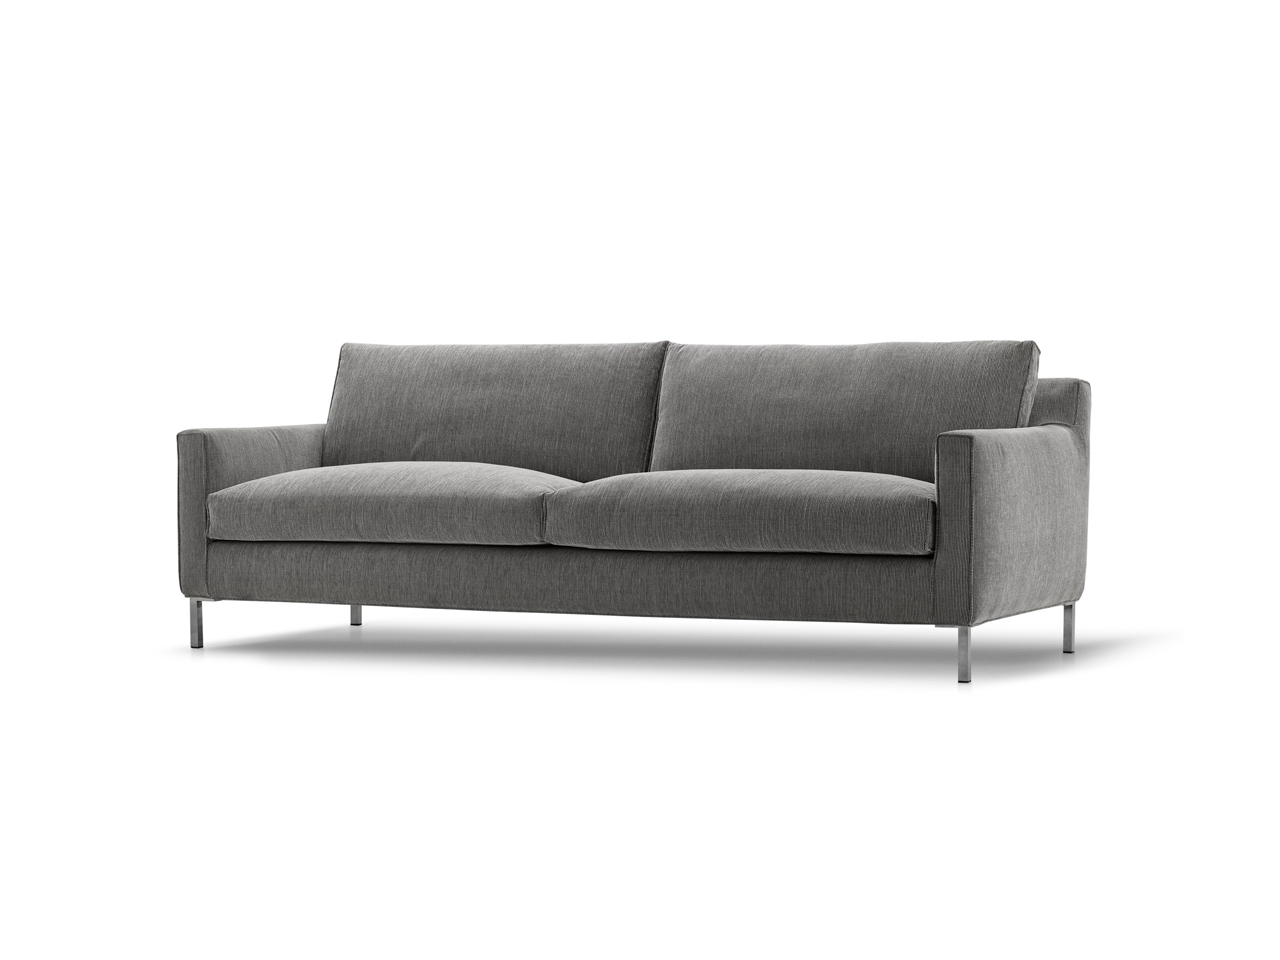 Stressless Sofa Space Streamline Sofa - The Century House - Madison, Wi